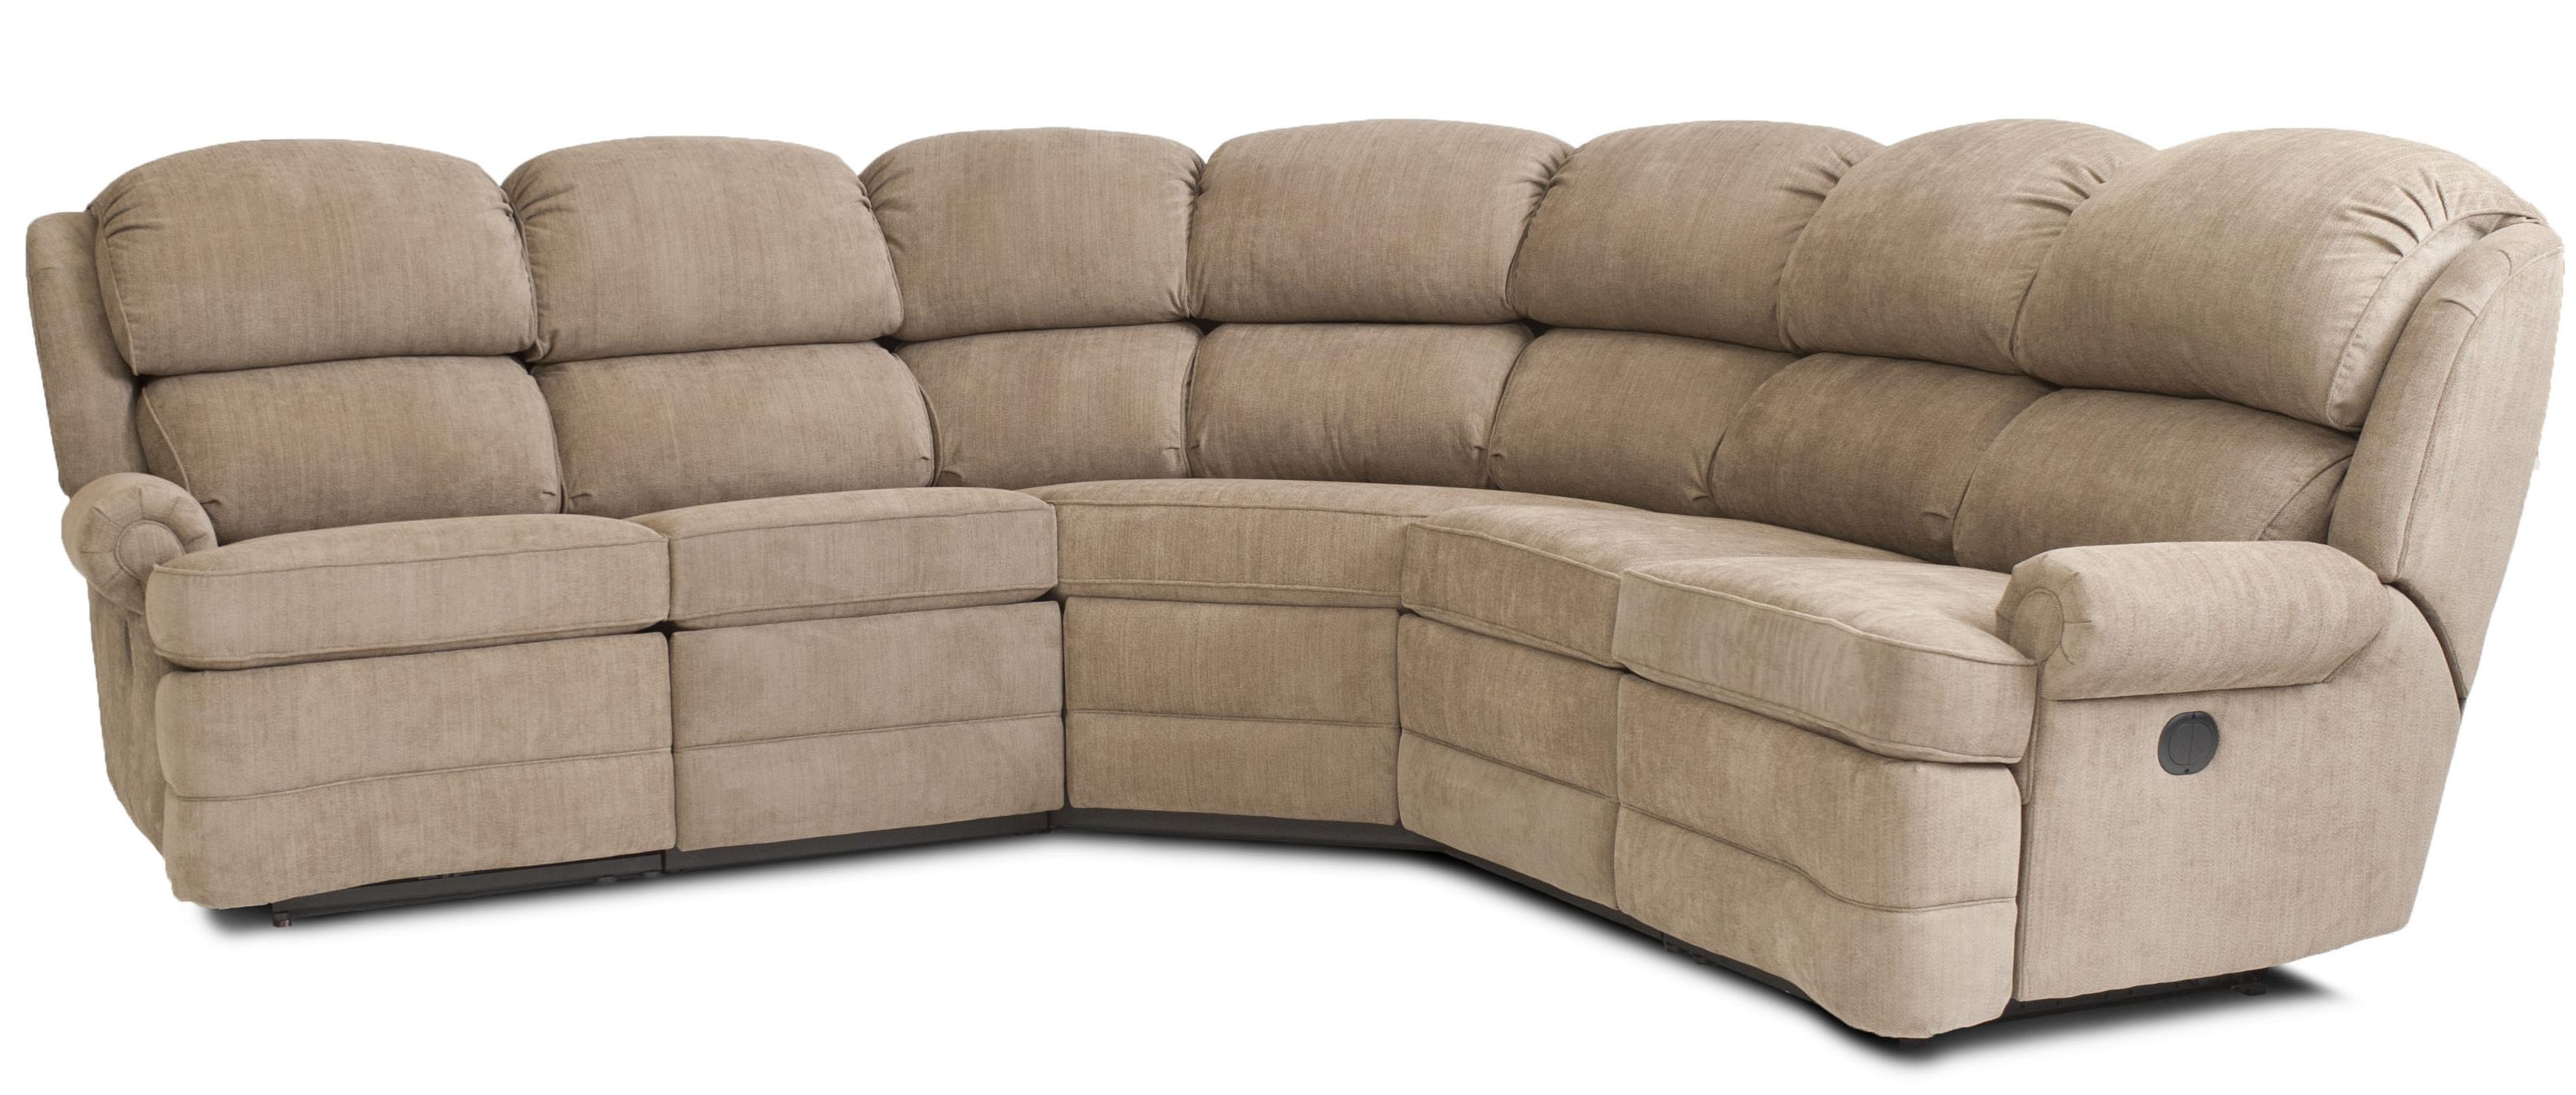 Transitional 5-Piece Reclining Sectional Sofa with Small Rolled Arms  sc 1 st  Wolf Furniture : small reclining sofas - islam-shia.org